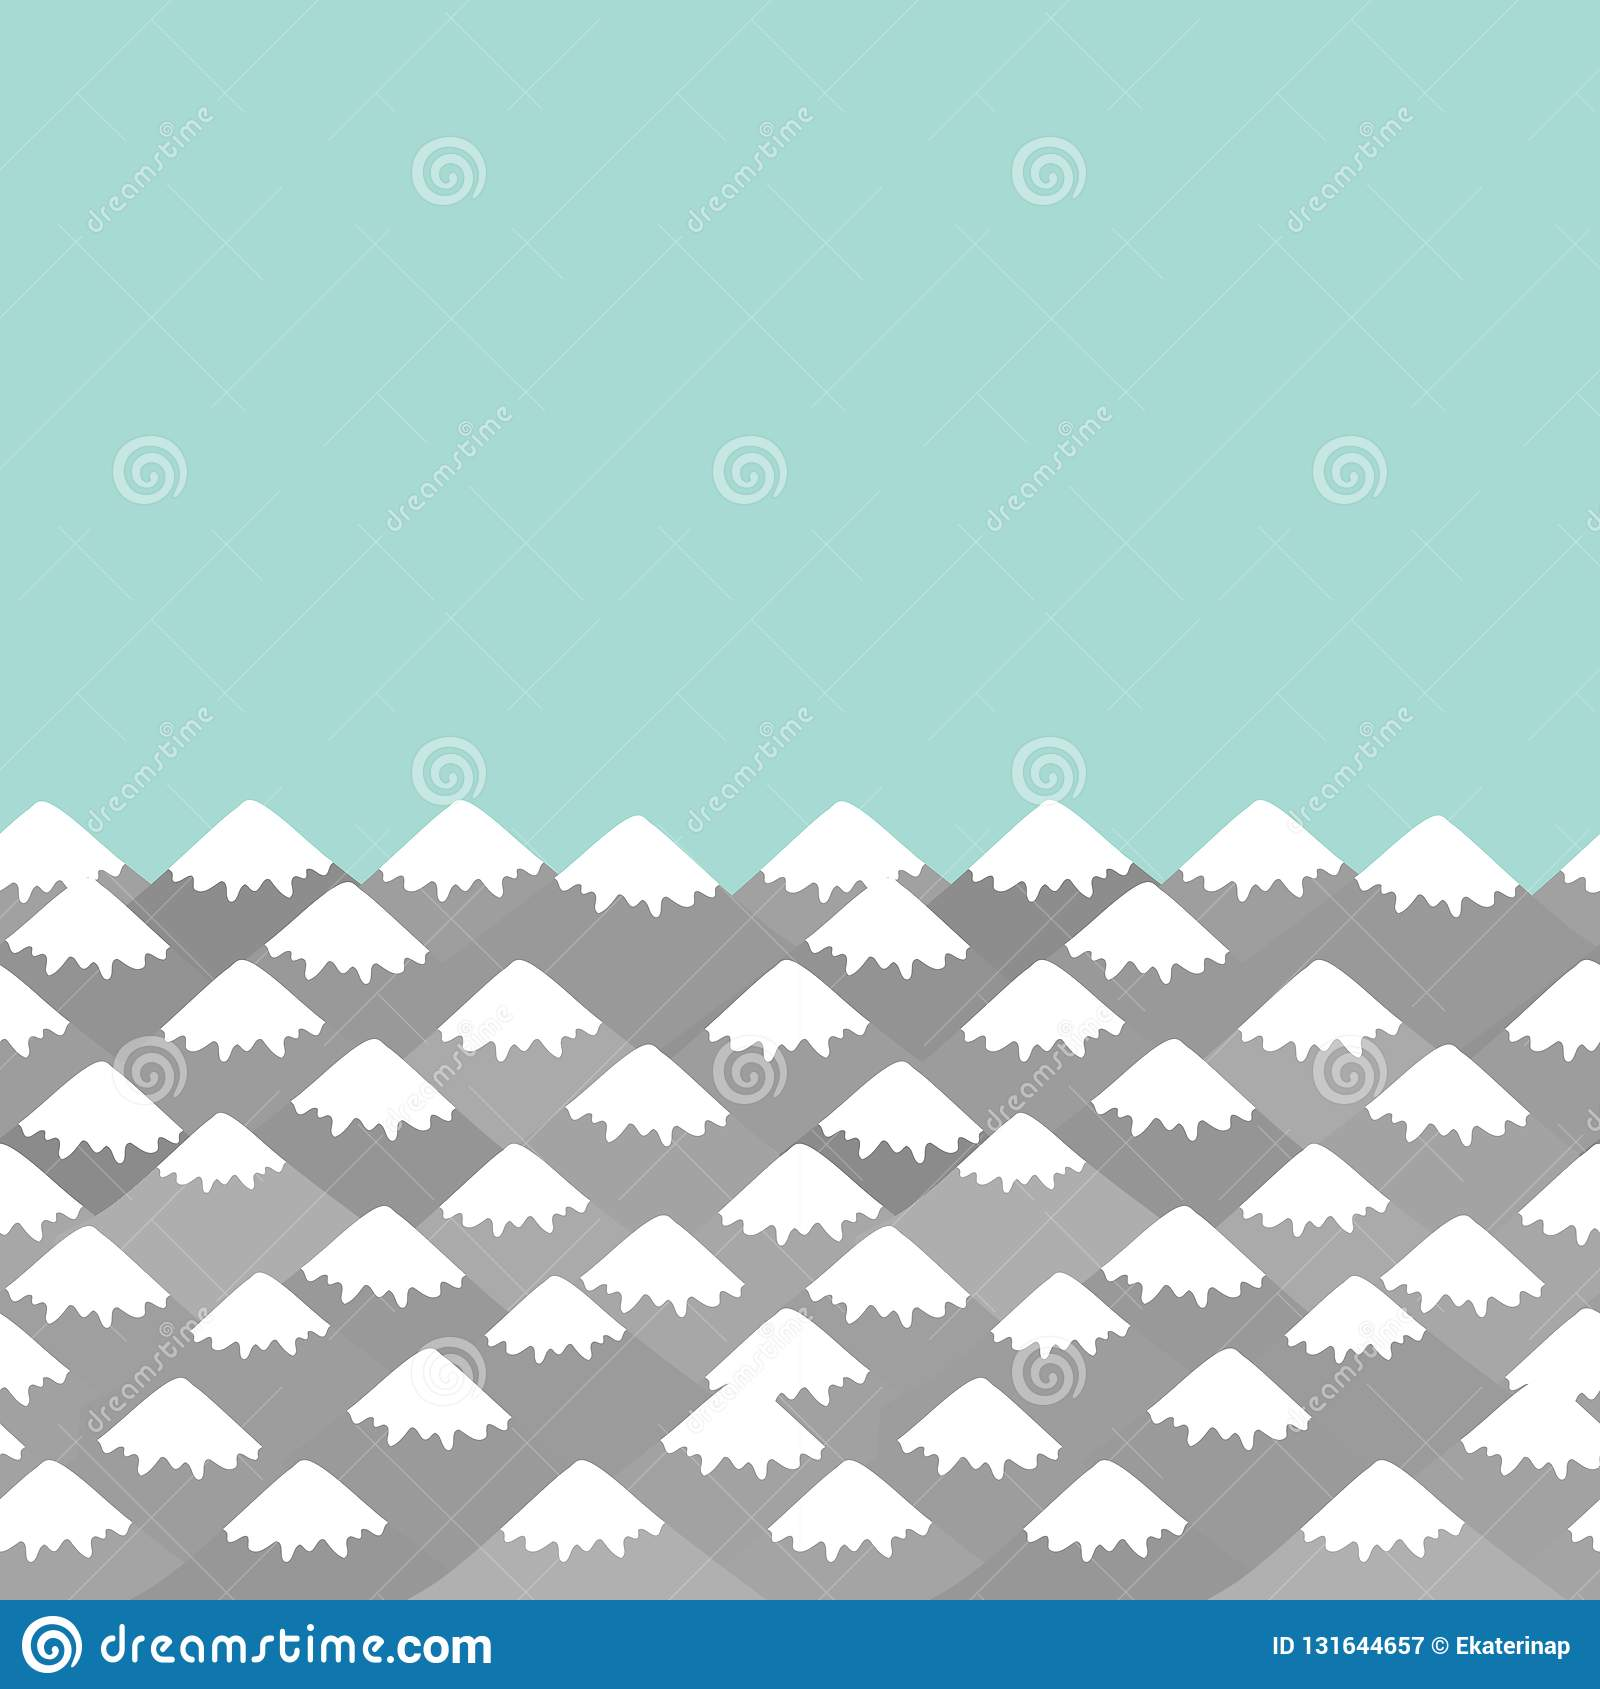 pattern Mount, card banner design Nature background with Mountain landscape. Gray, mint blue mountain with snow-capped peaks.